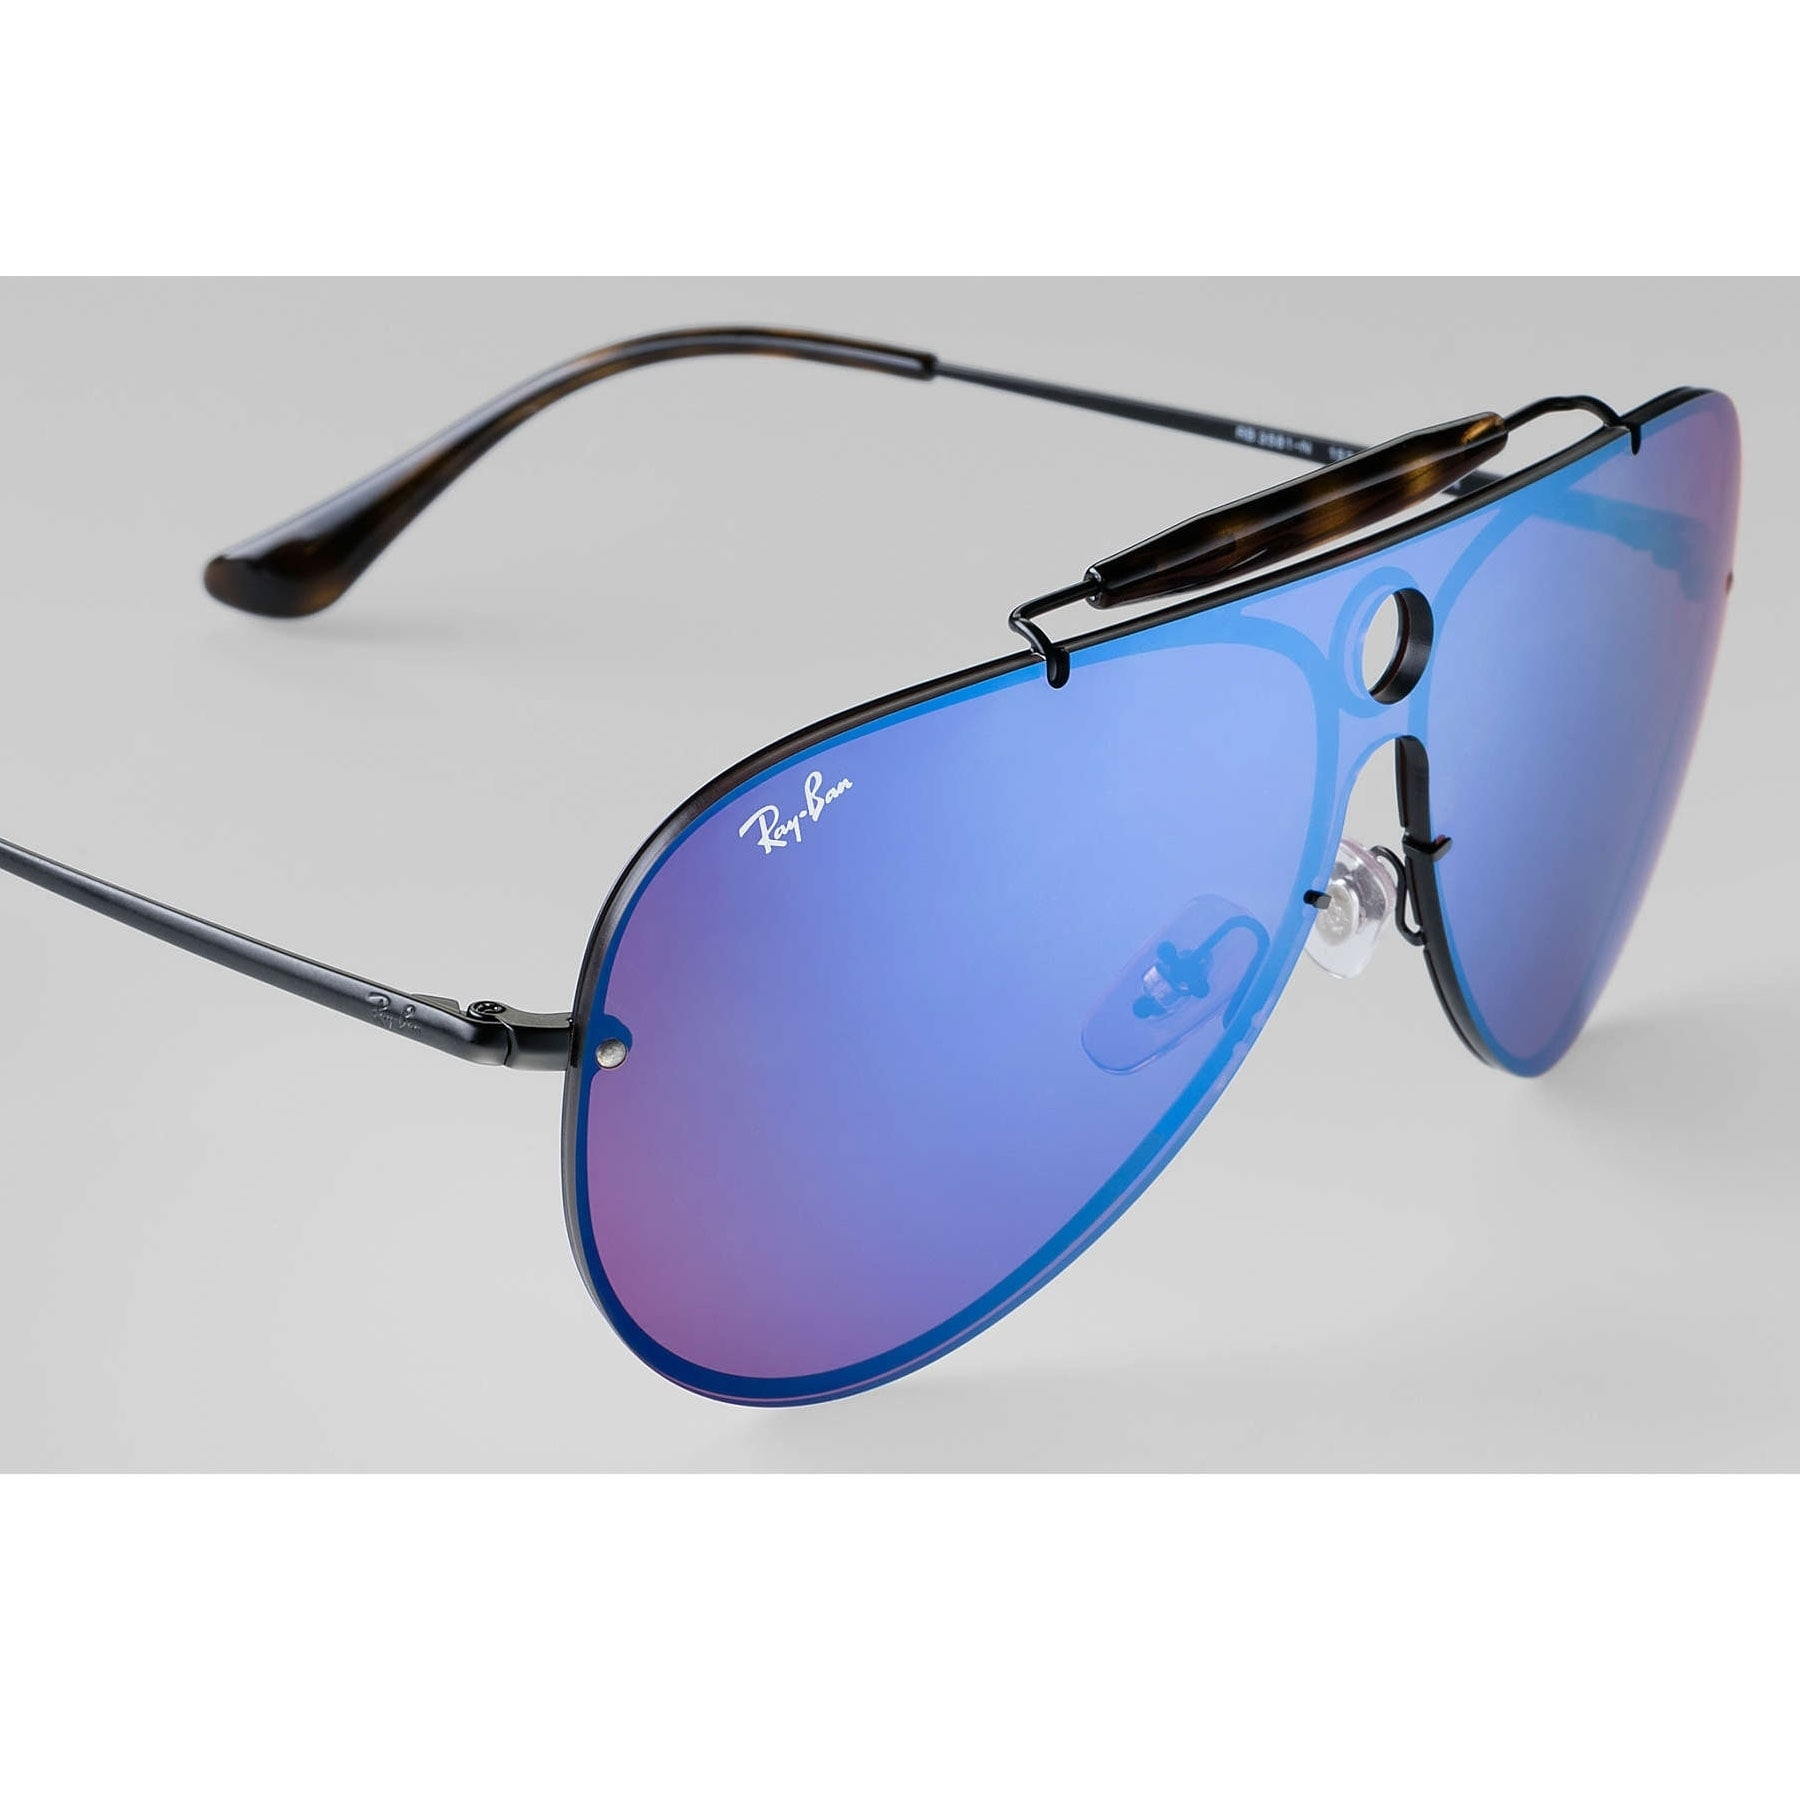 9c6a139867 Shop Ray-Ban RB3581N Blaze Sunglasses Black  Violet   Blue Mirror 32mm -  Free Shipping Today - Overstock - 20457188